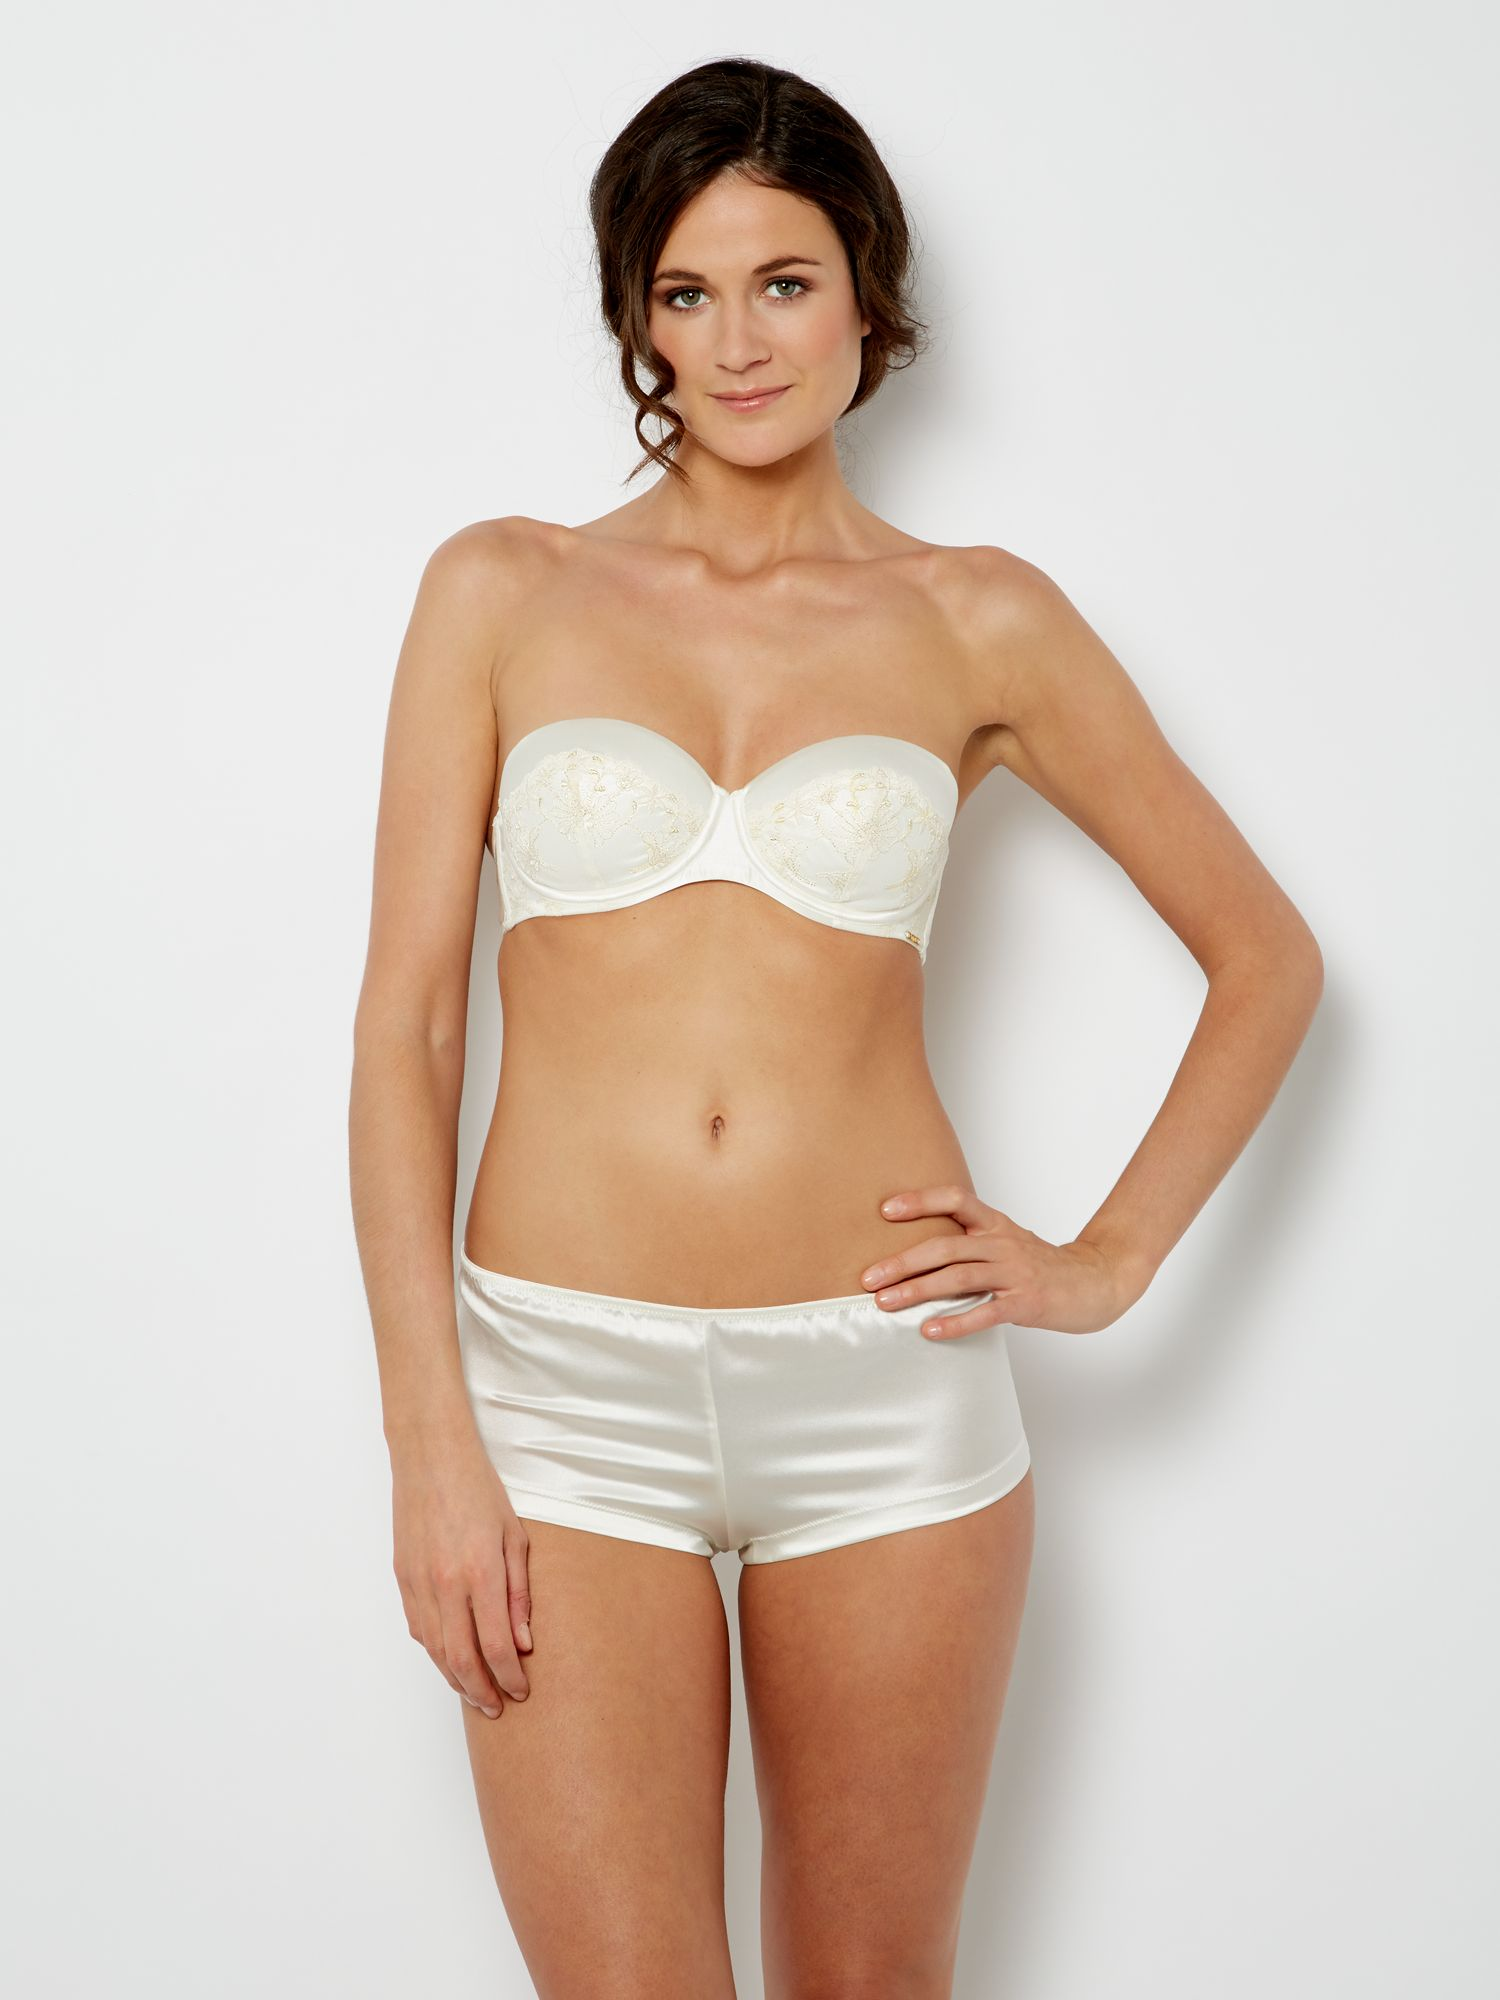 Amour bridal embroidery short